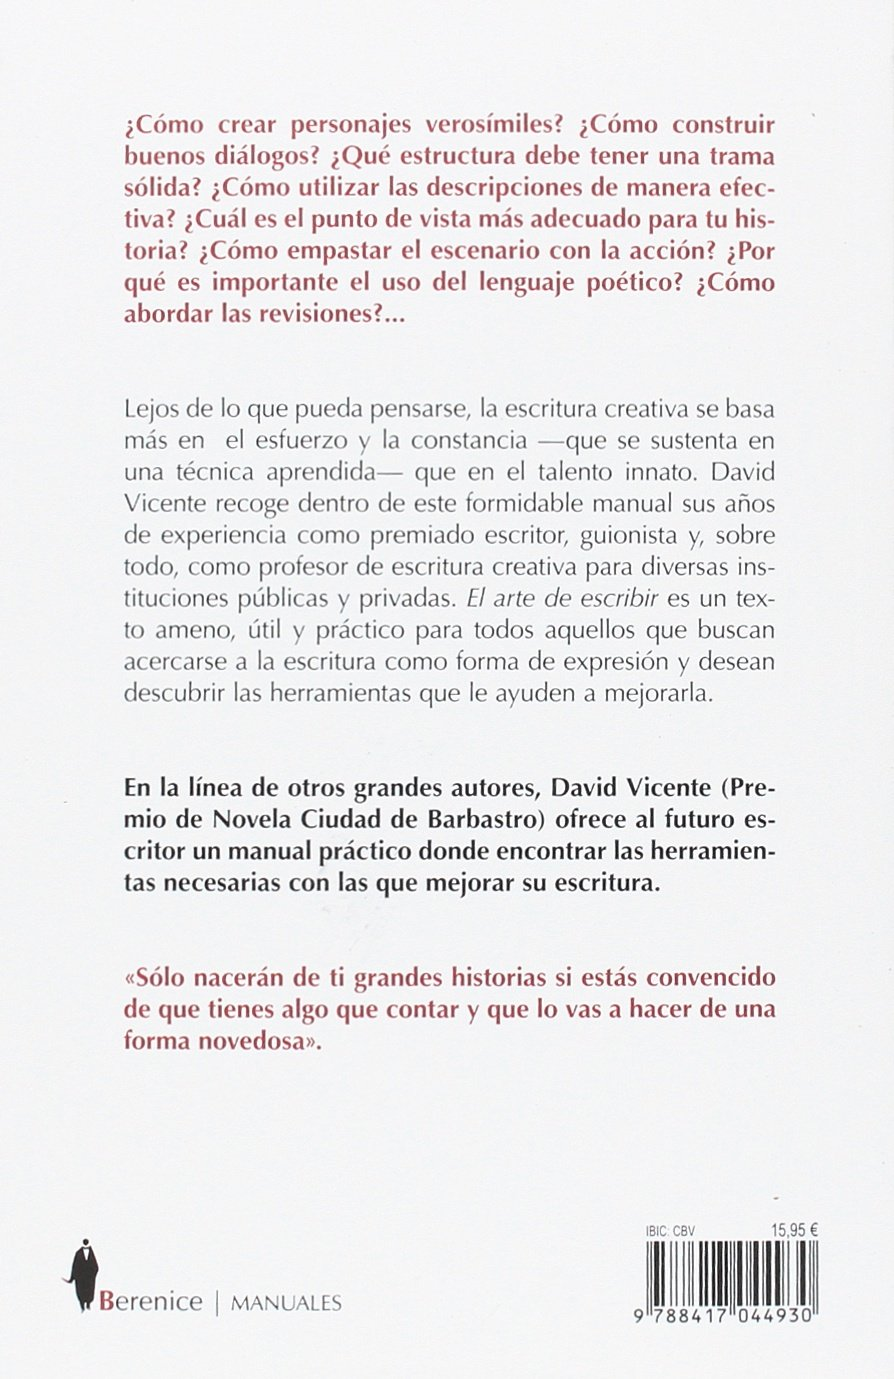 Arte de escribir, El. Manual de escritura creativa Manuales: Amazon.es: David Vicente: Libros